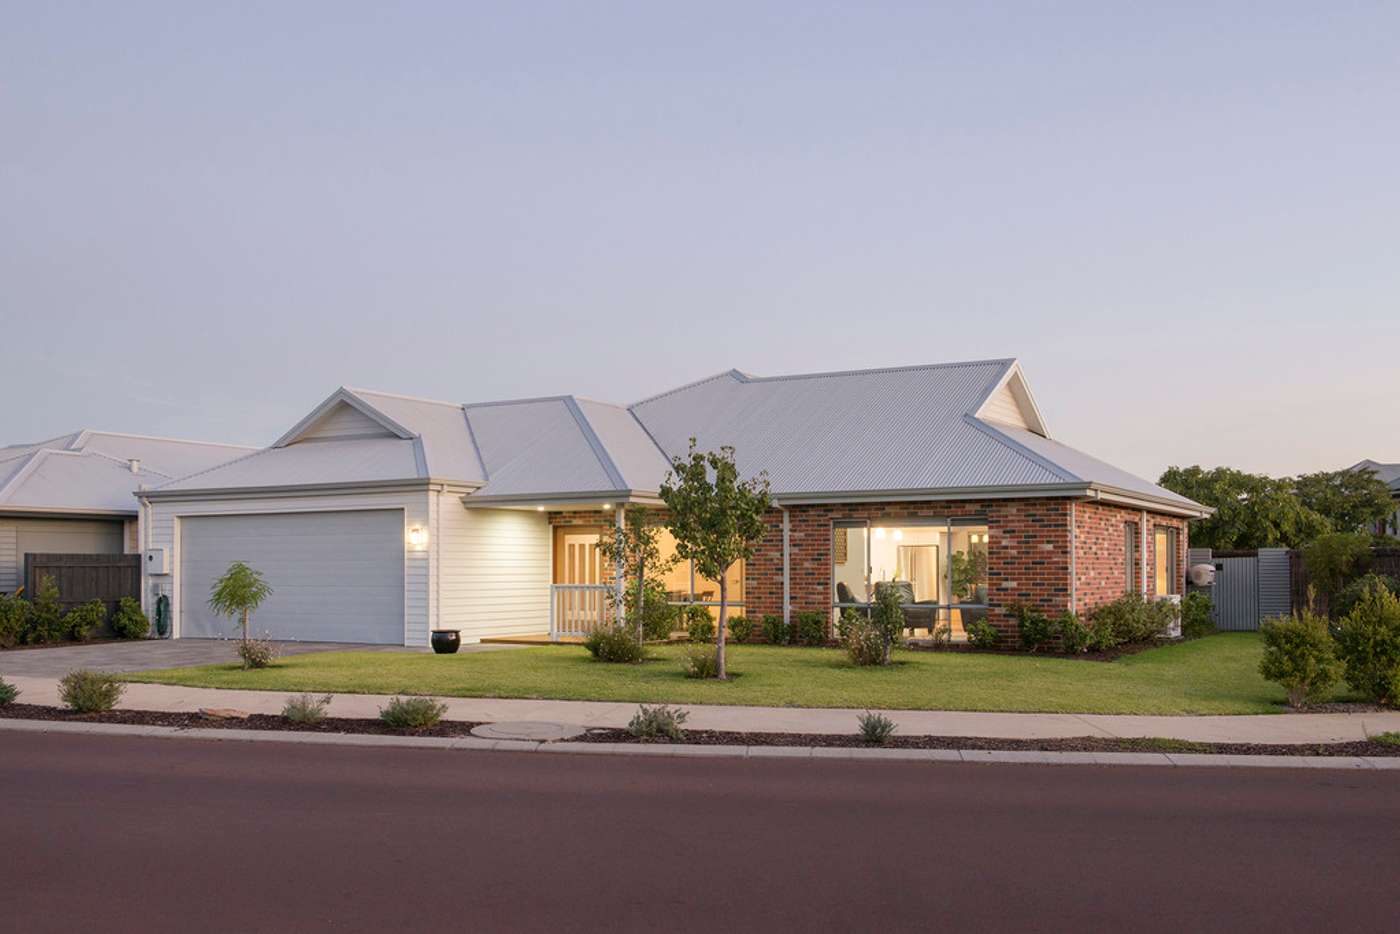 Main view of Homely house listing, 2 Waterville Road, Dunsborough WA 6281